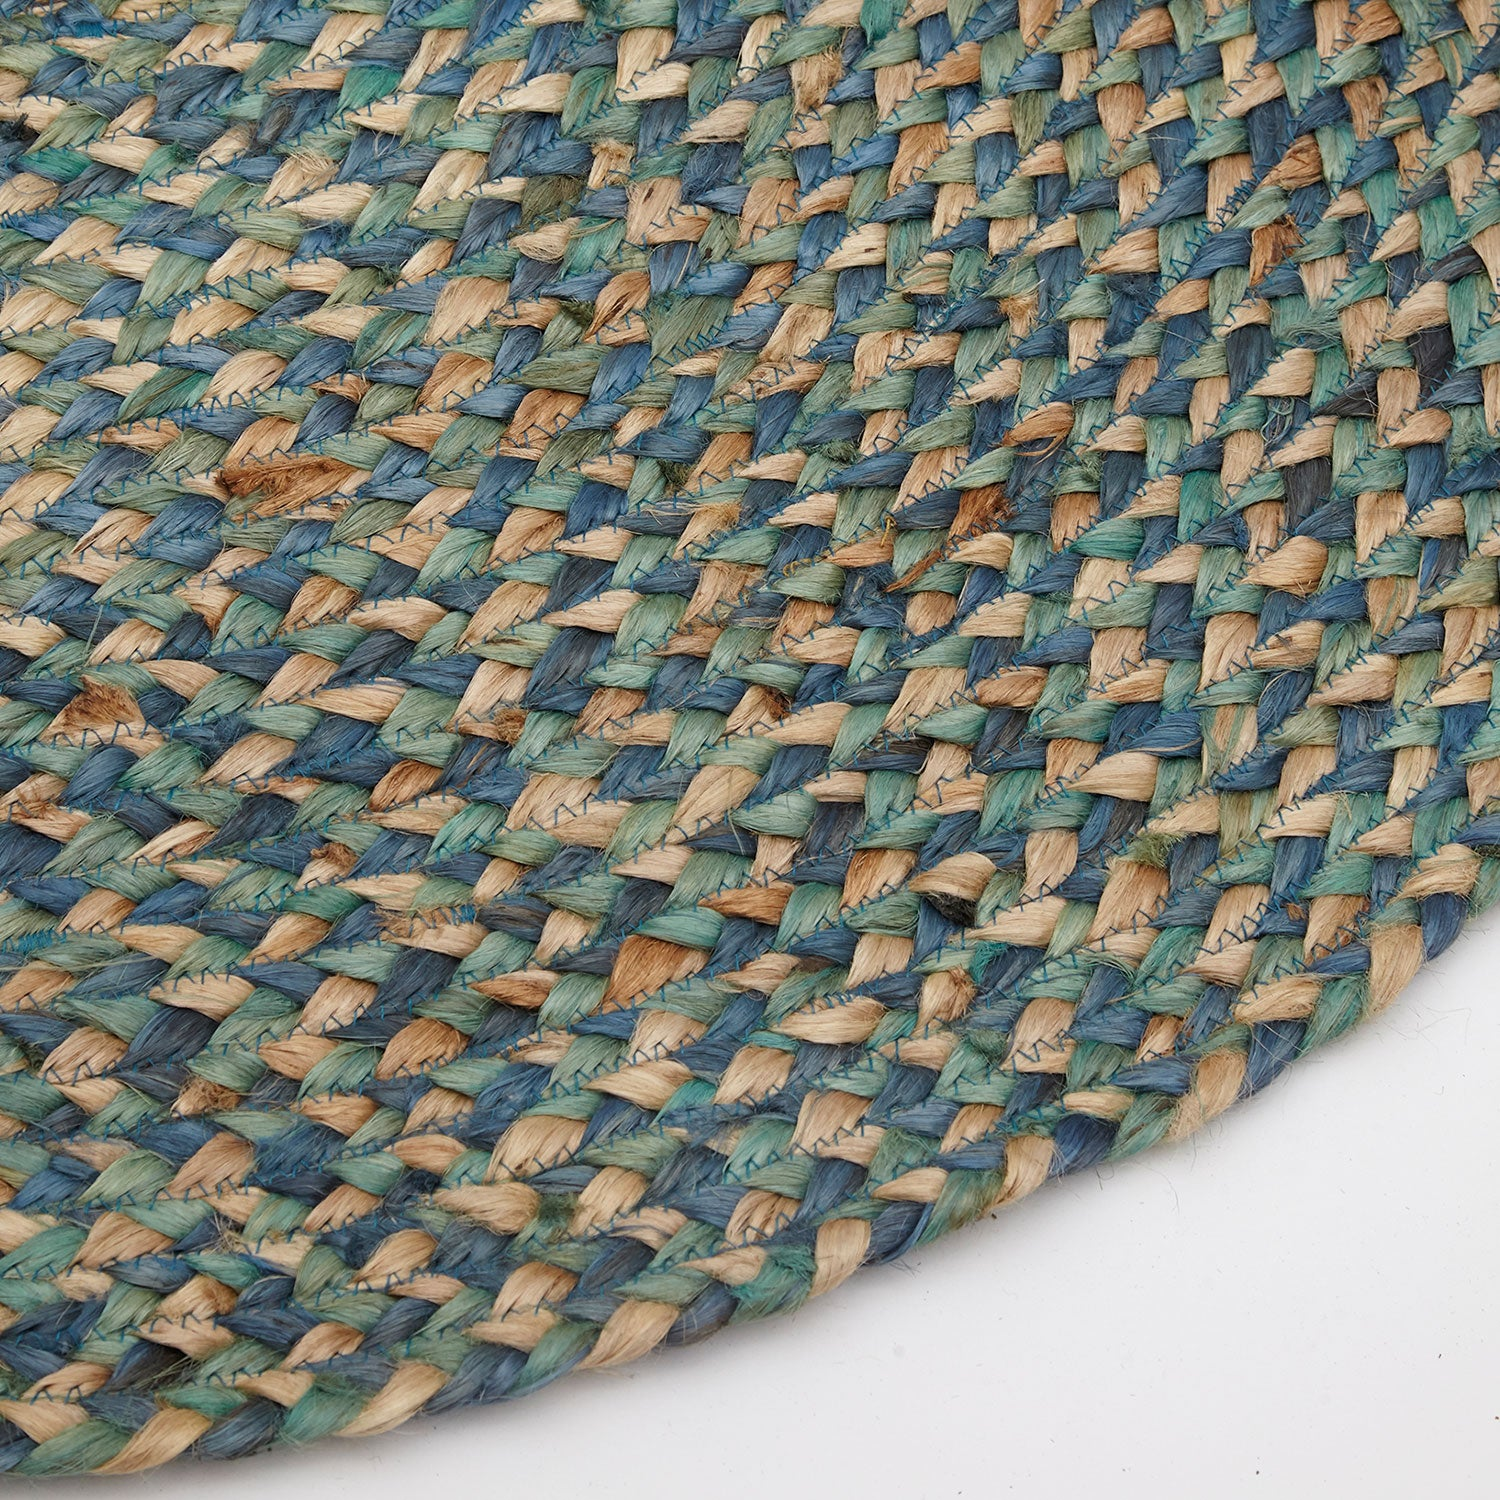 Spectrum Handmade Round Jute Rug, Natural and Turquoise